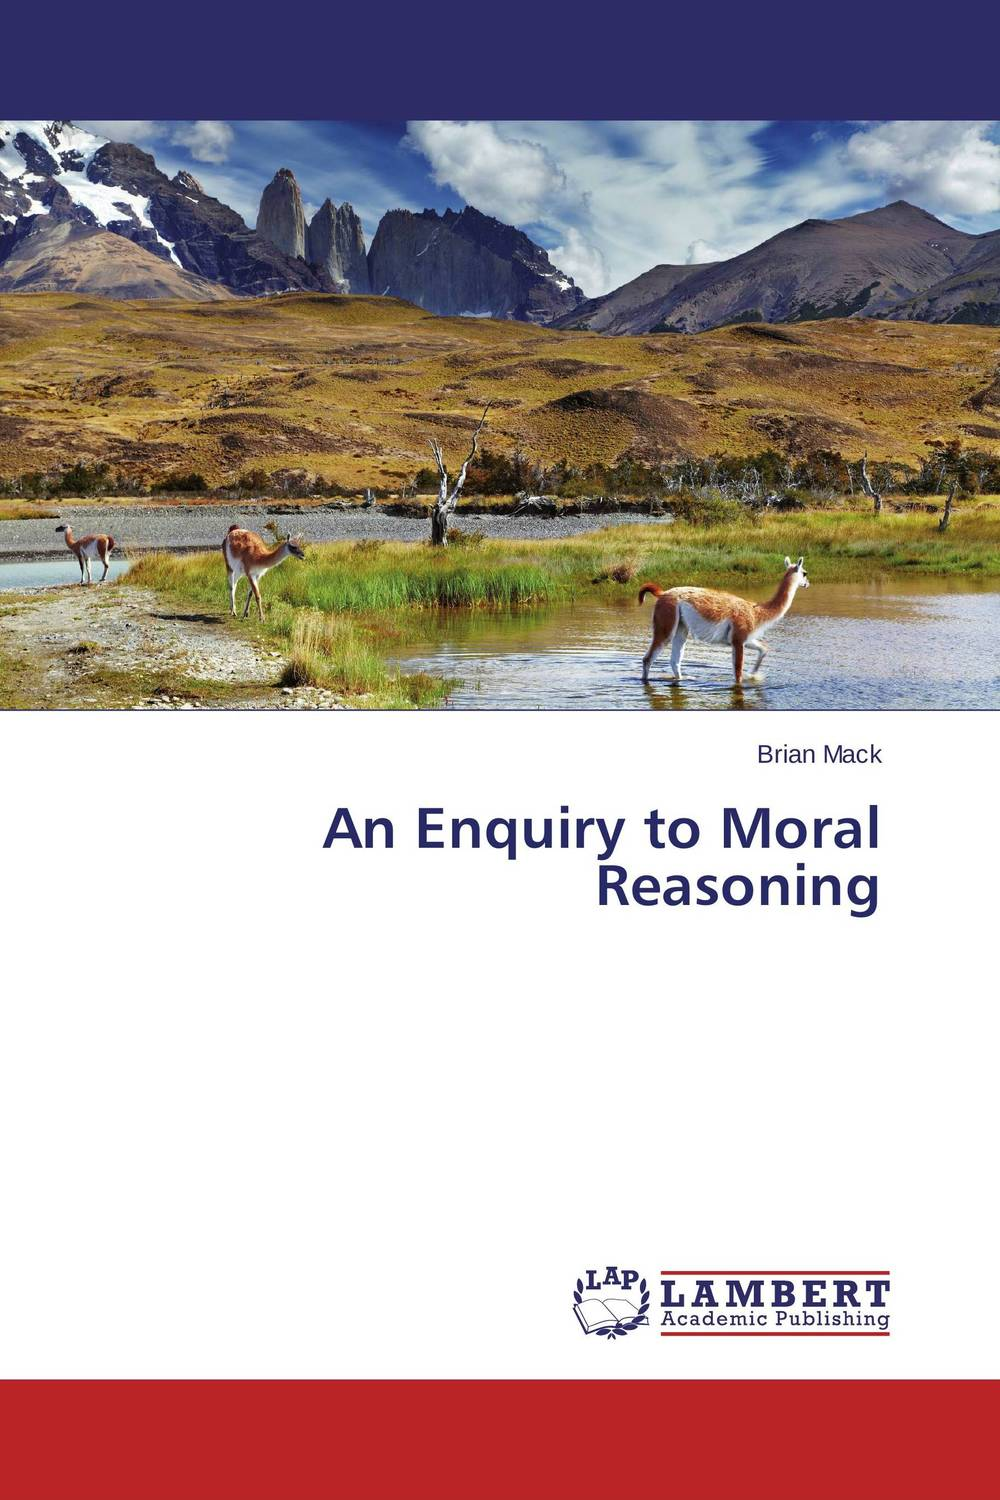 An Enquiry to Moral Reasoning addison wiggin endless money the moral hazards of socialism